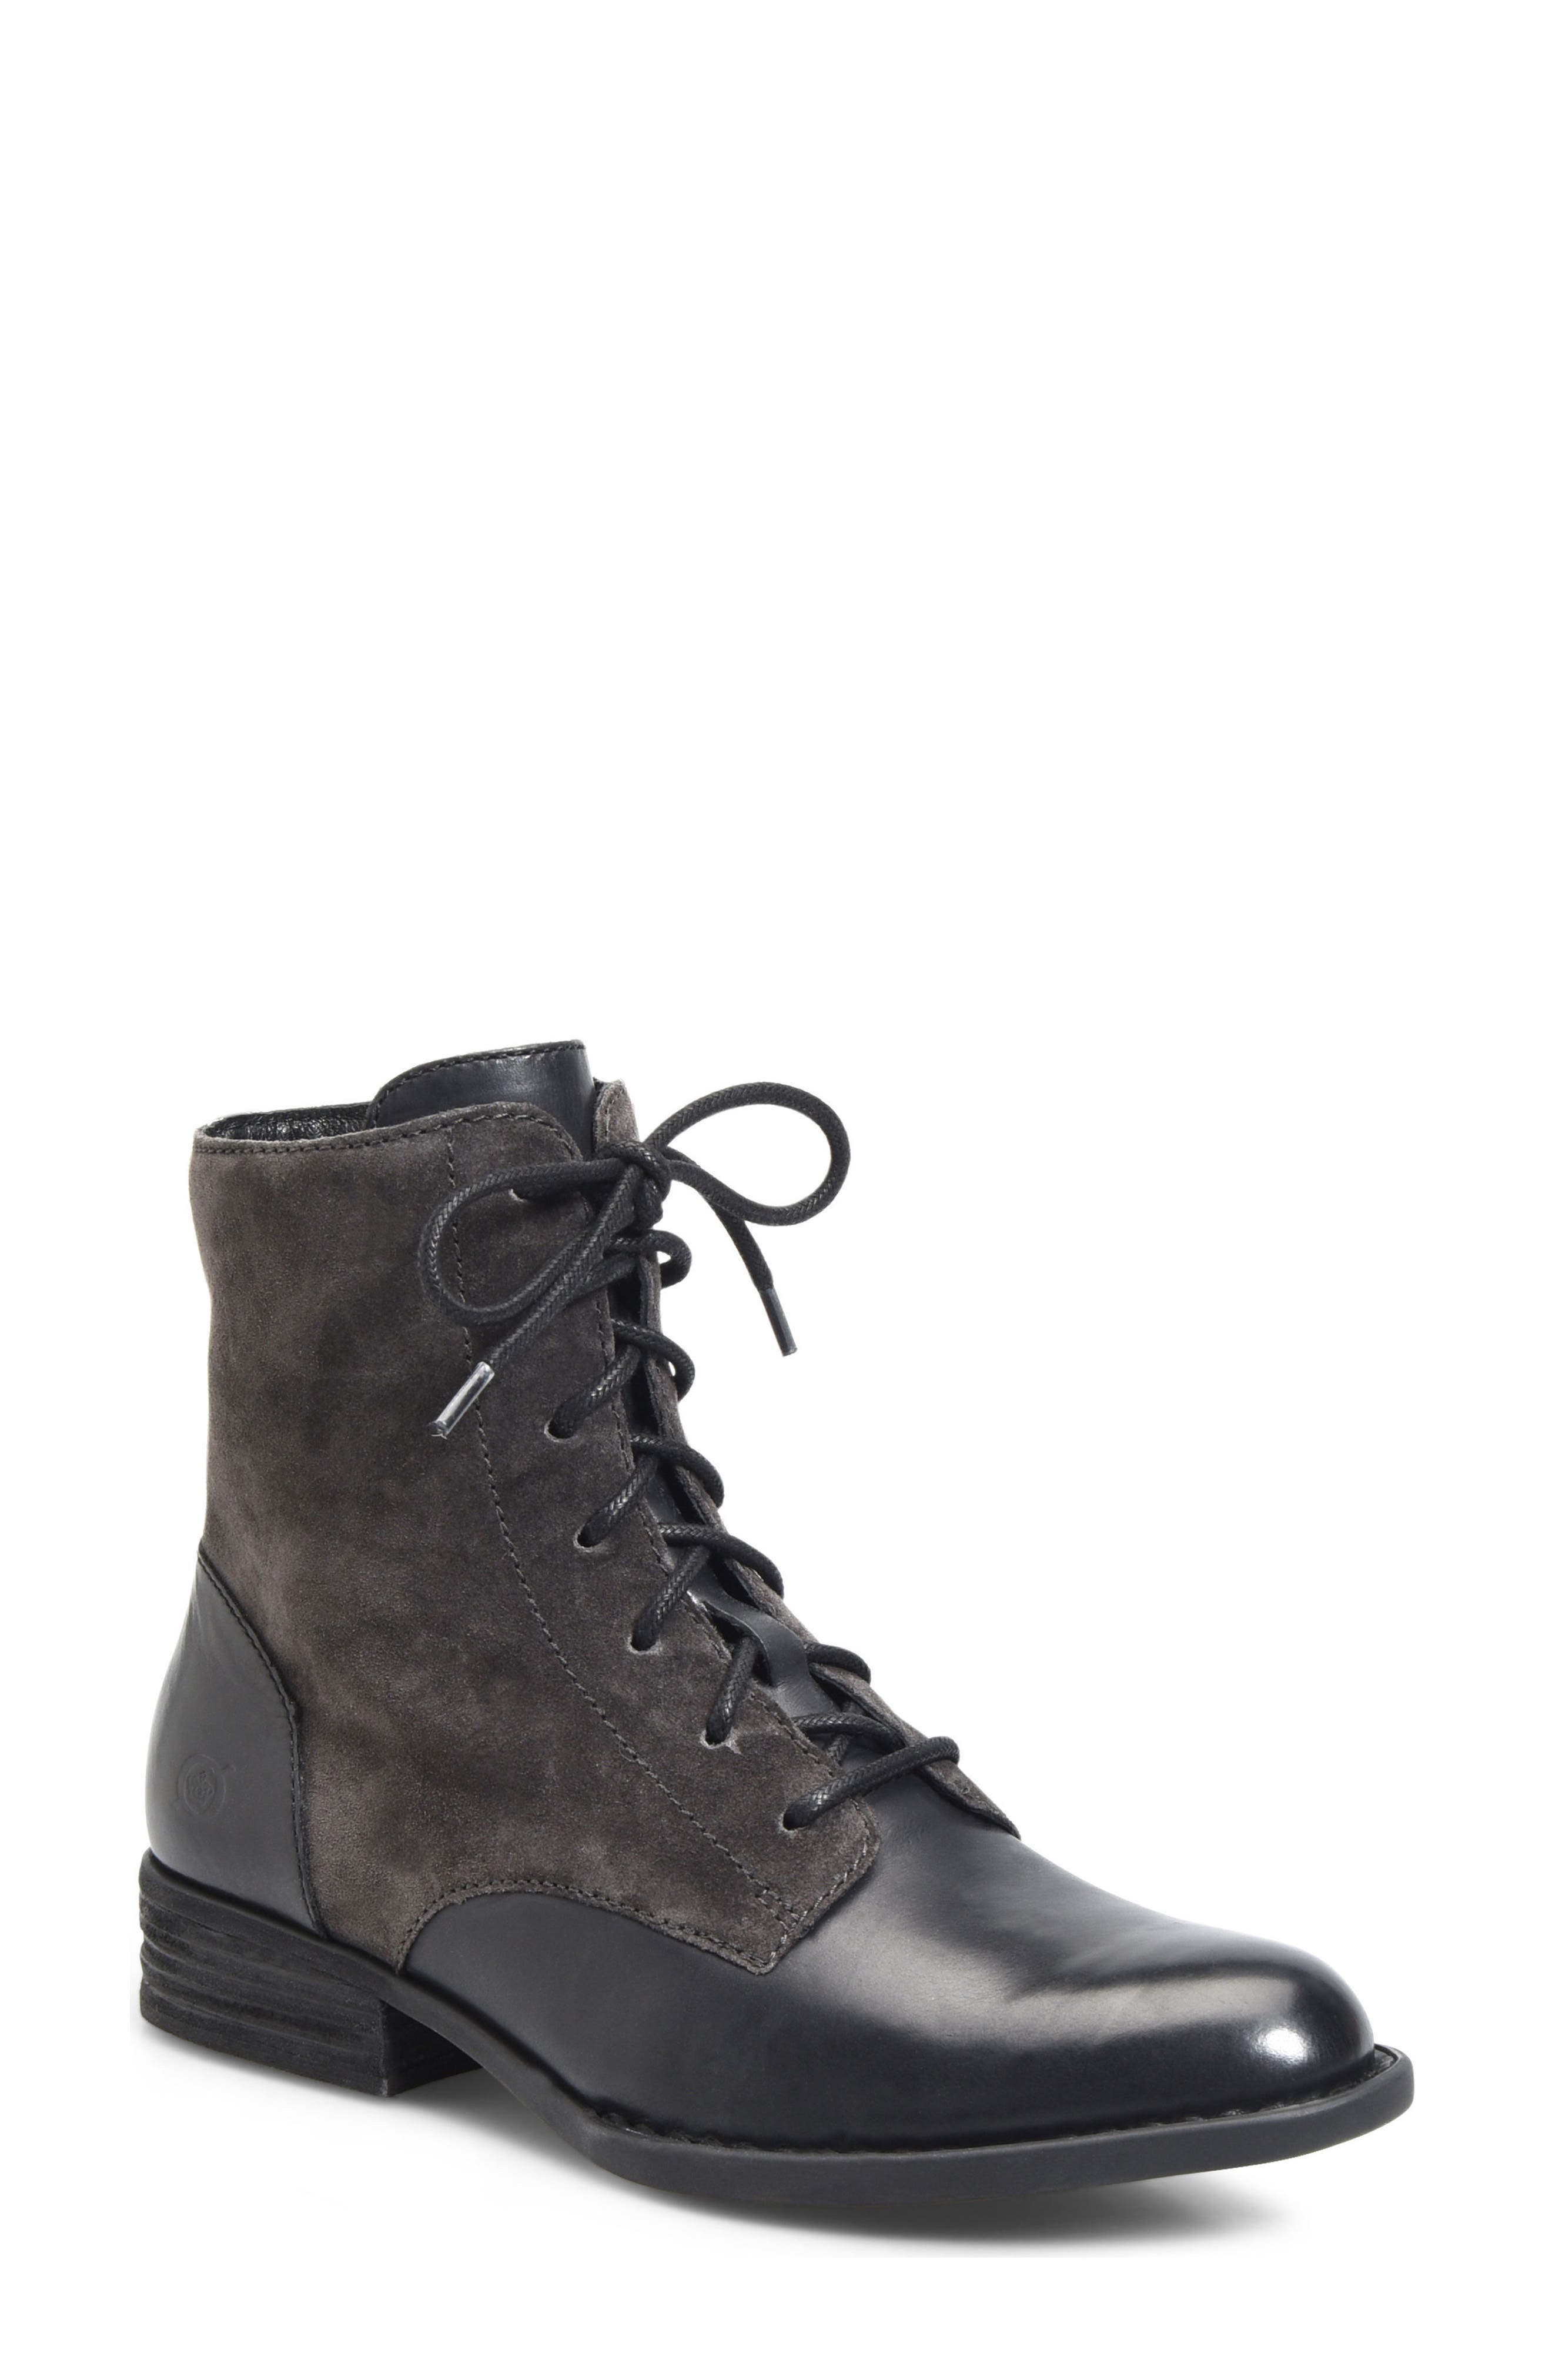 Clements Lace-Up Boot,                             Main thumbnail 1, color,